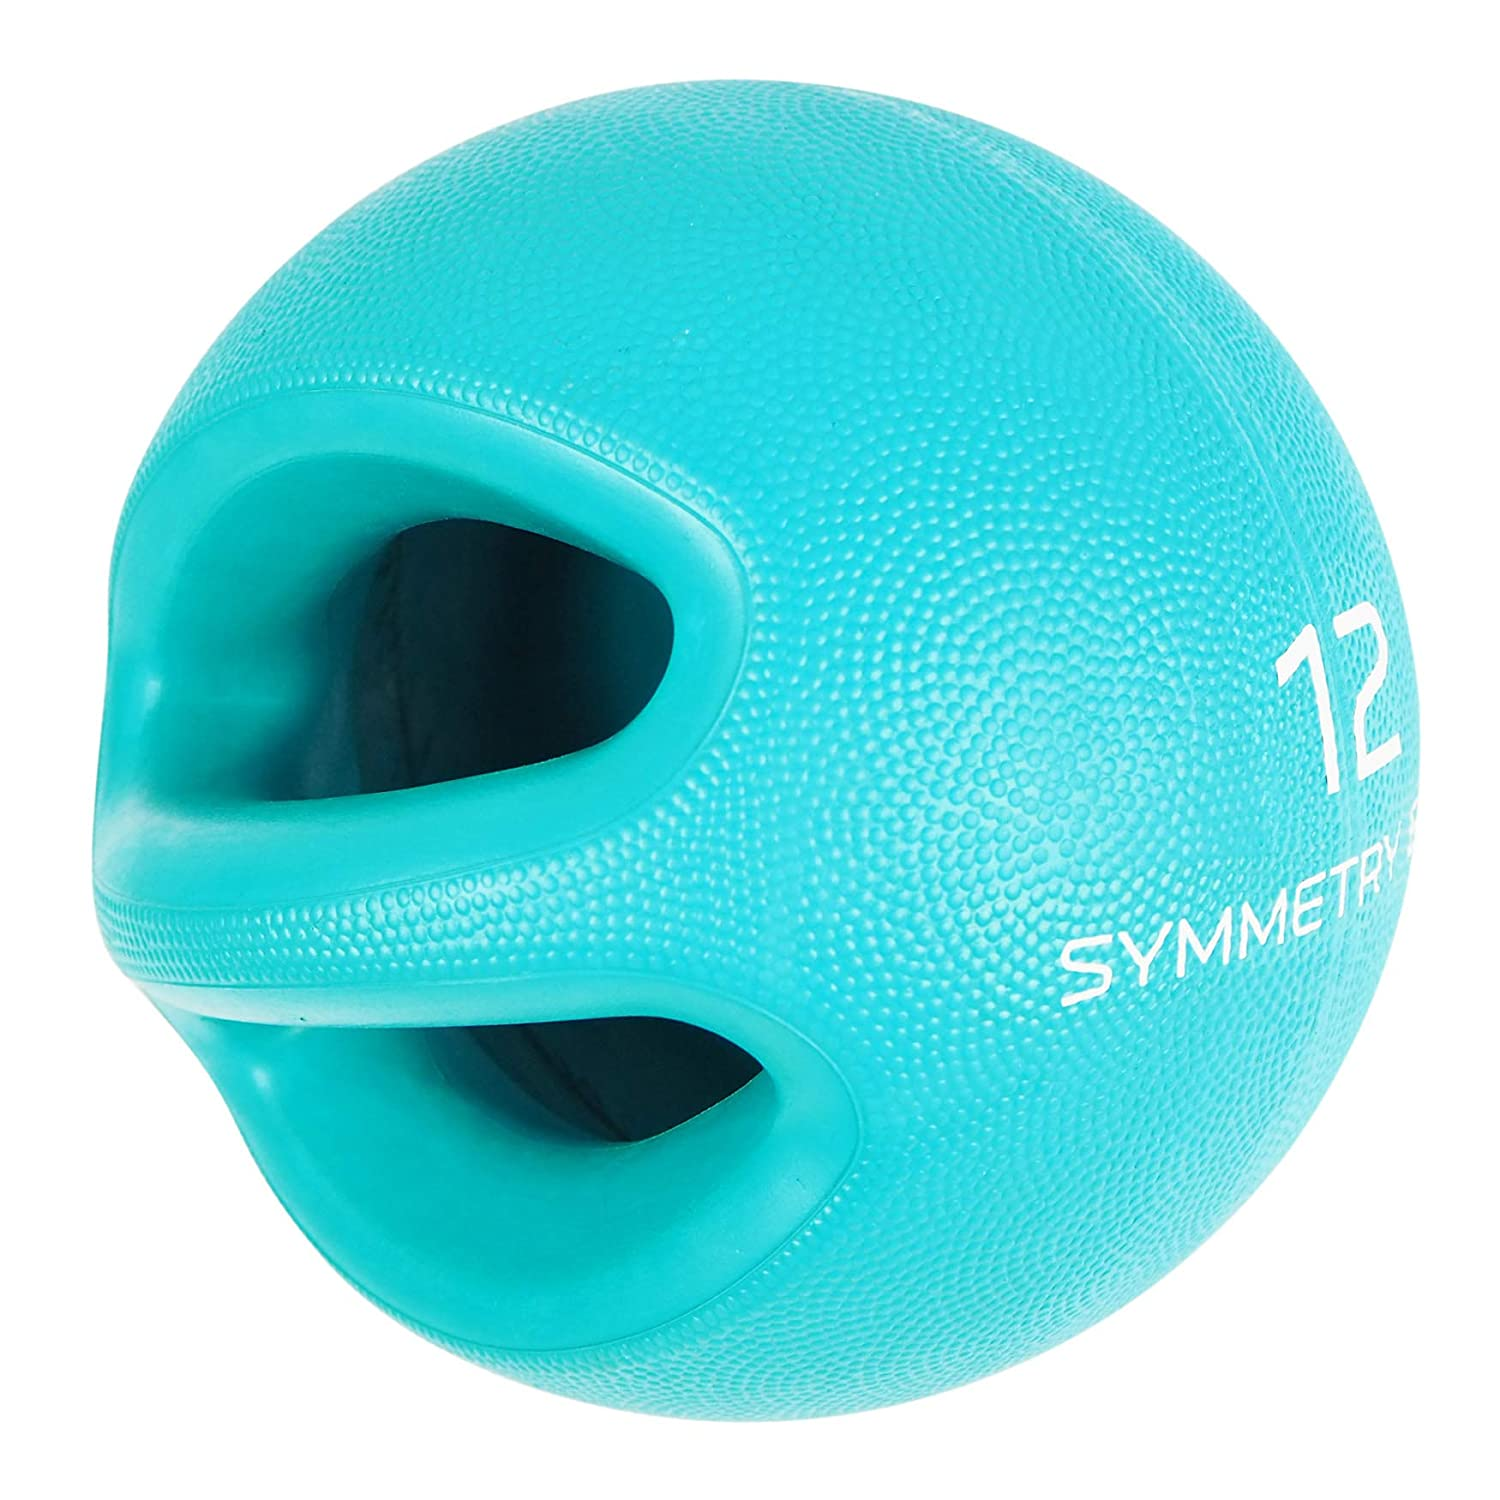 Smart Body Symmetry Ball – Patented Dual Handled Medicine Ball for Core Strength